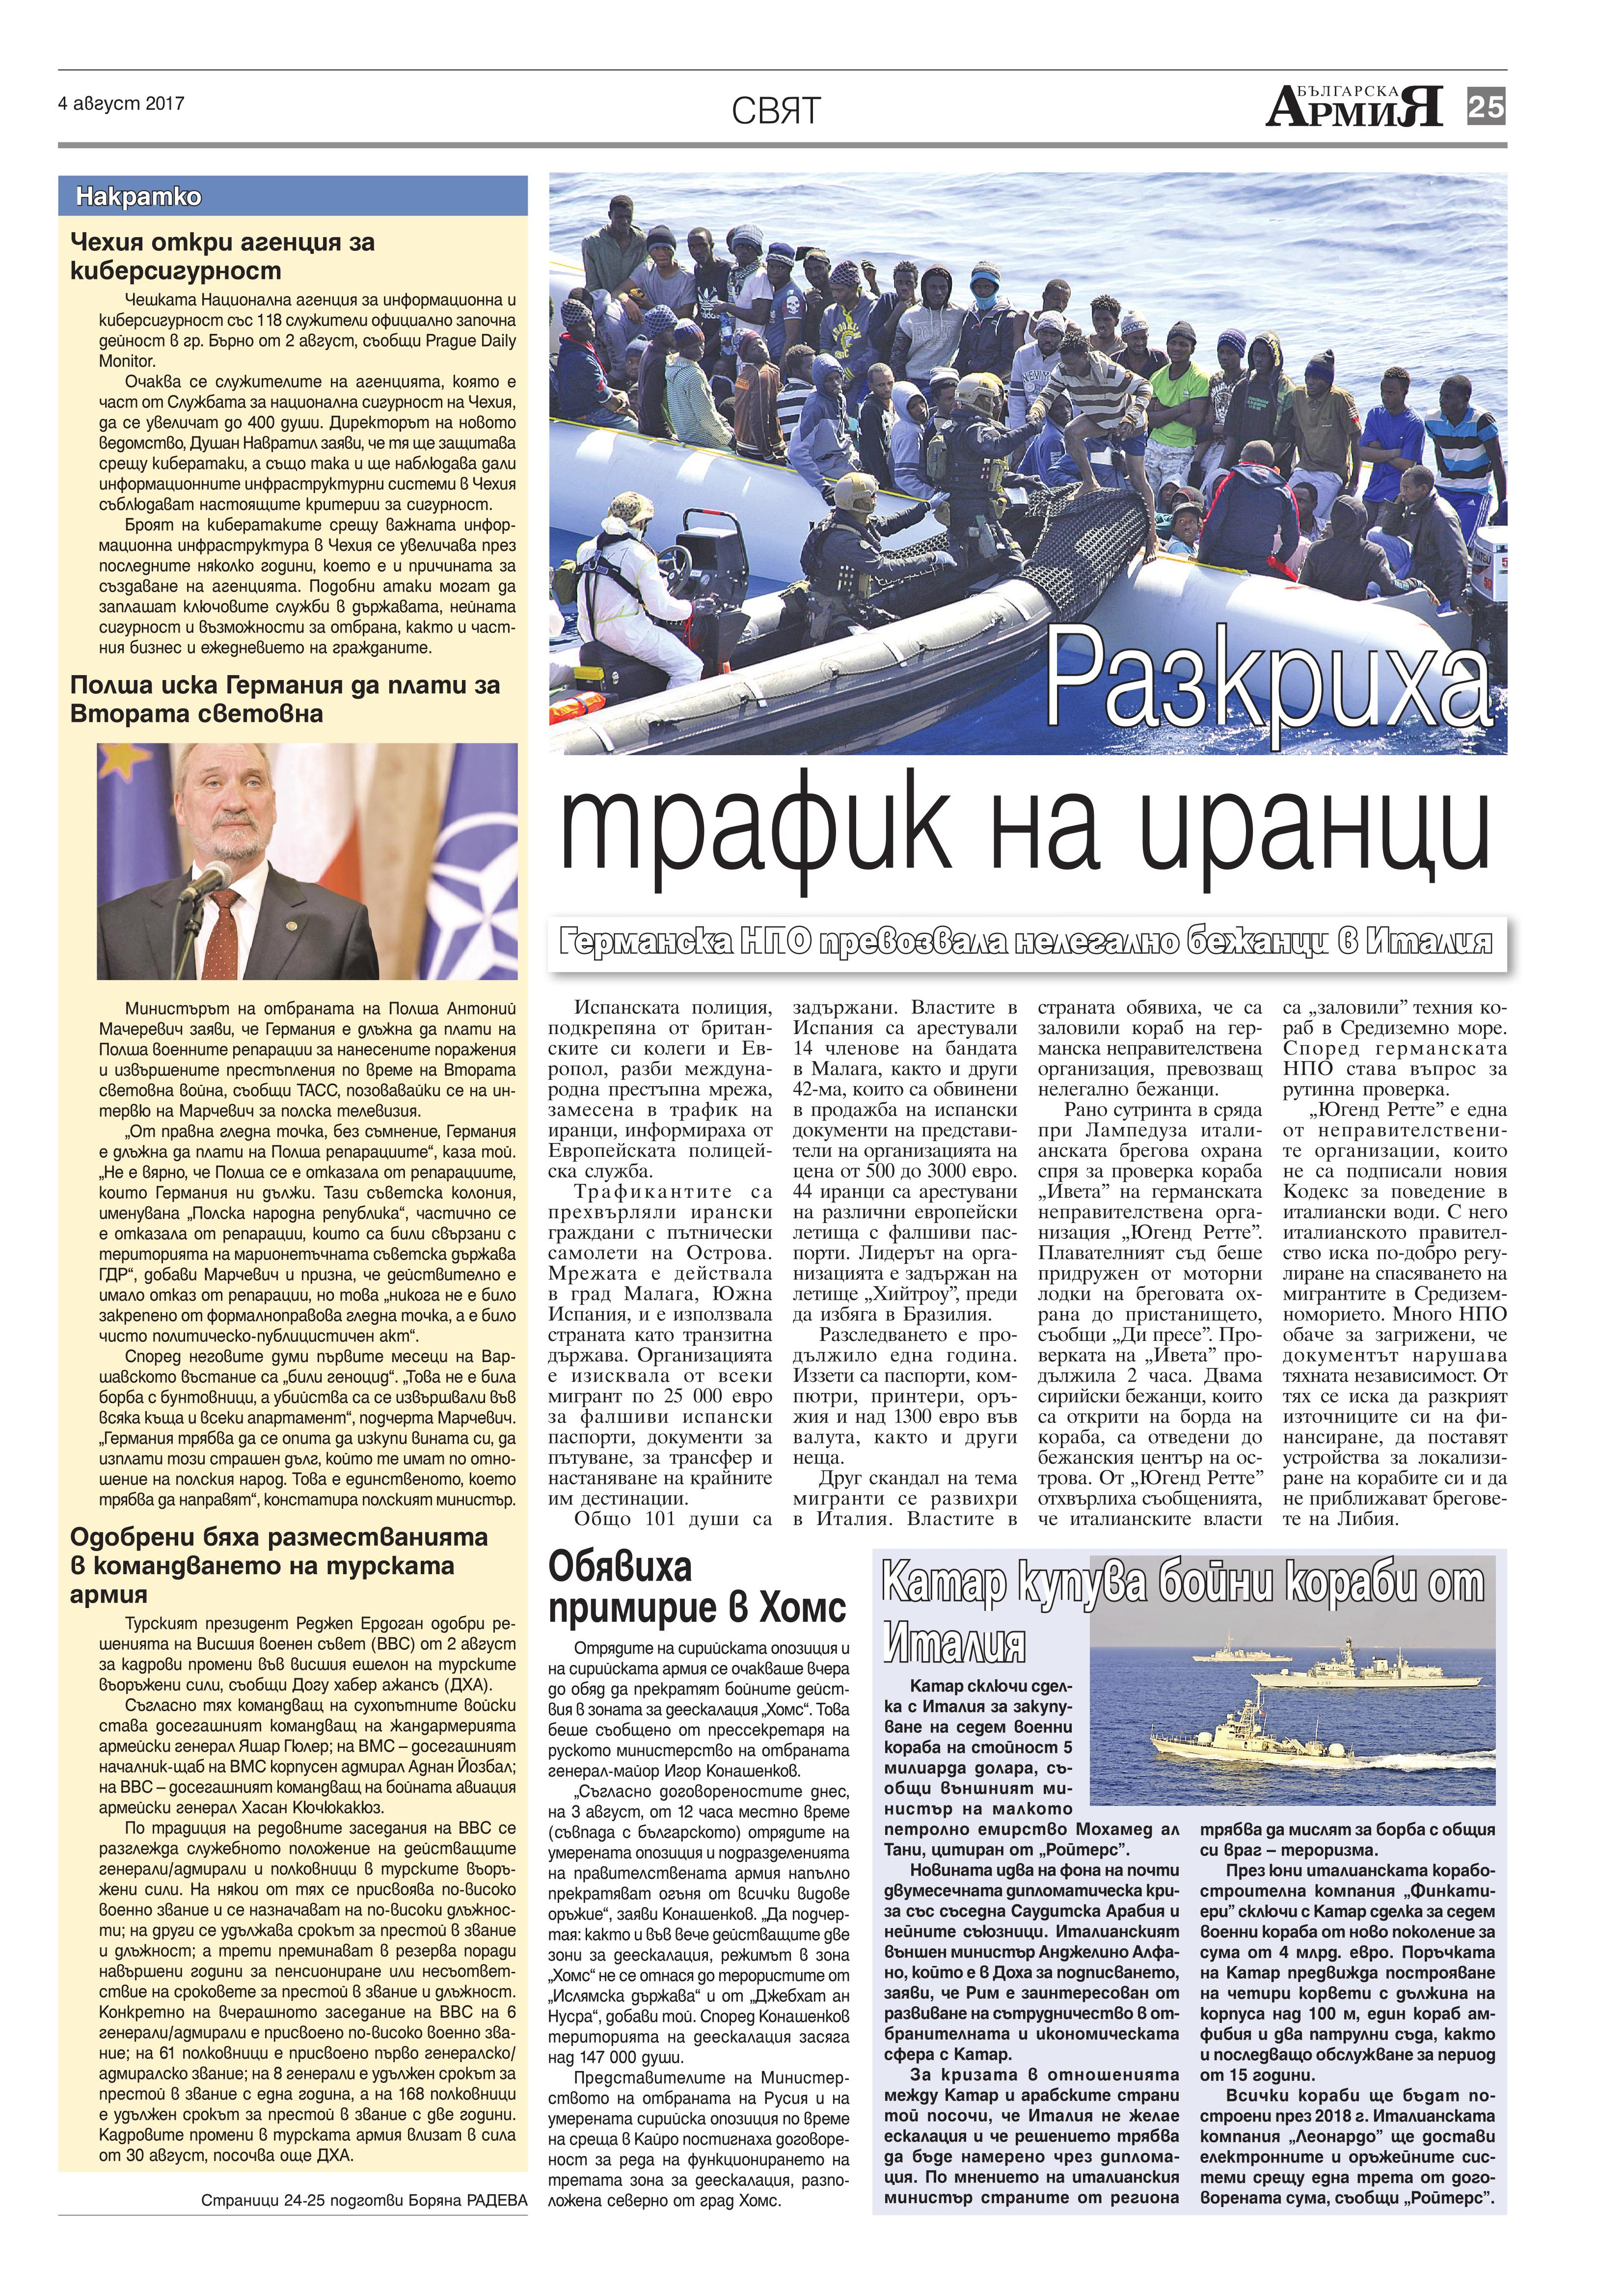 https://www.armymedia.bg/wp-content/uploads/2015/06/25.page1_-24.jpg